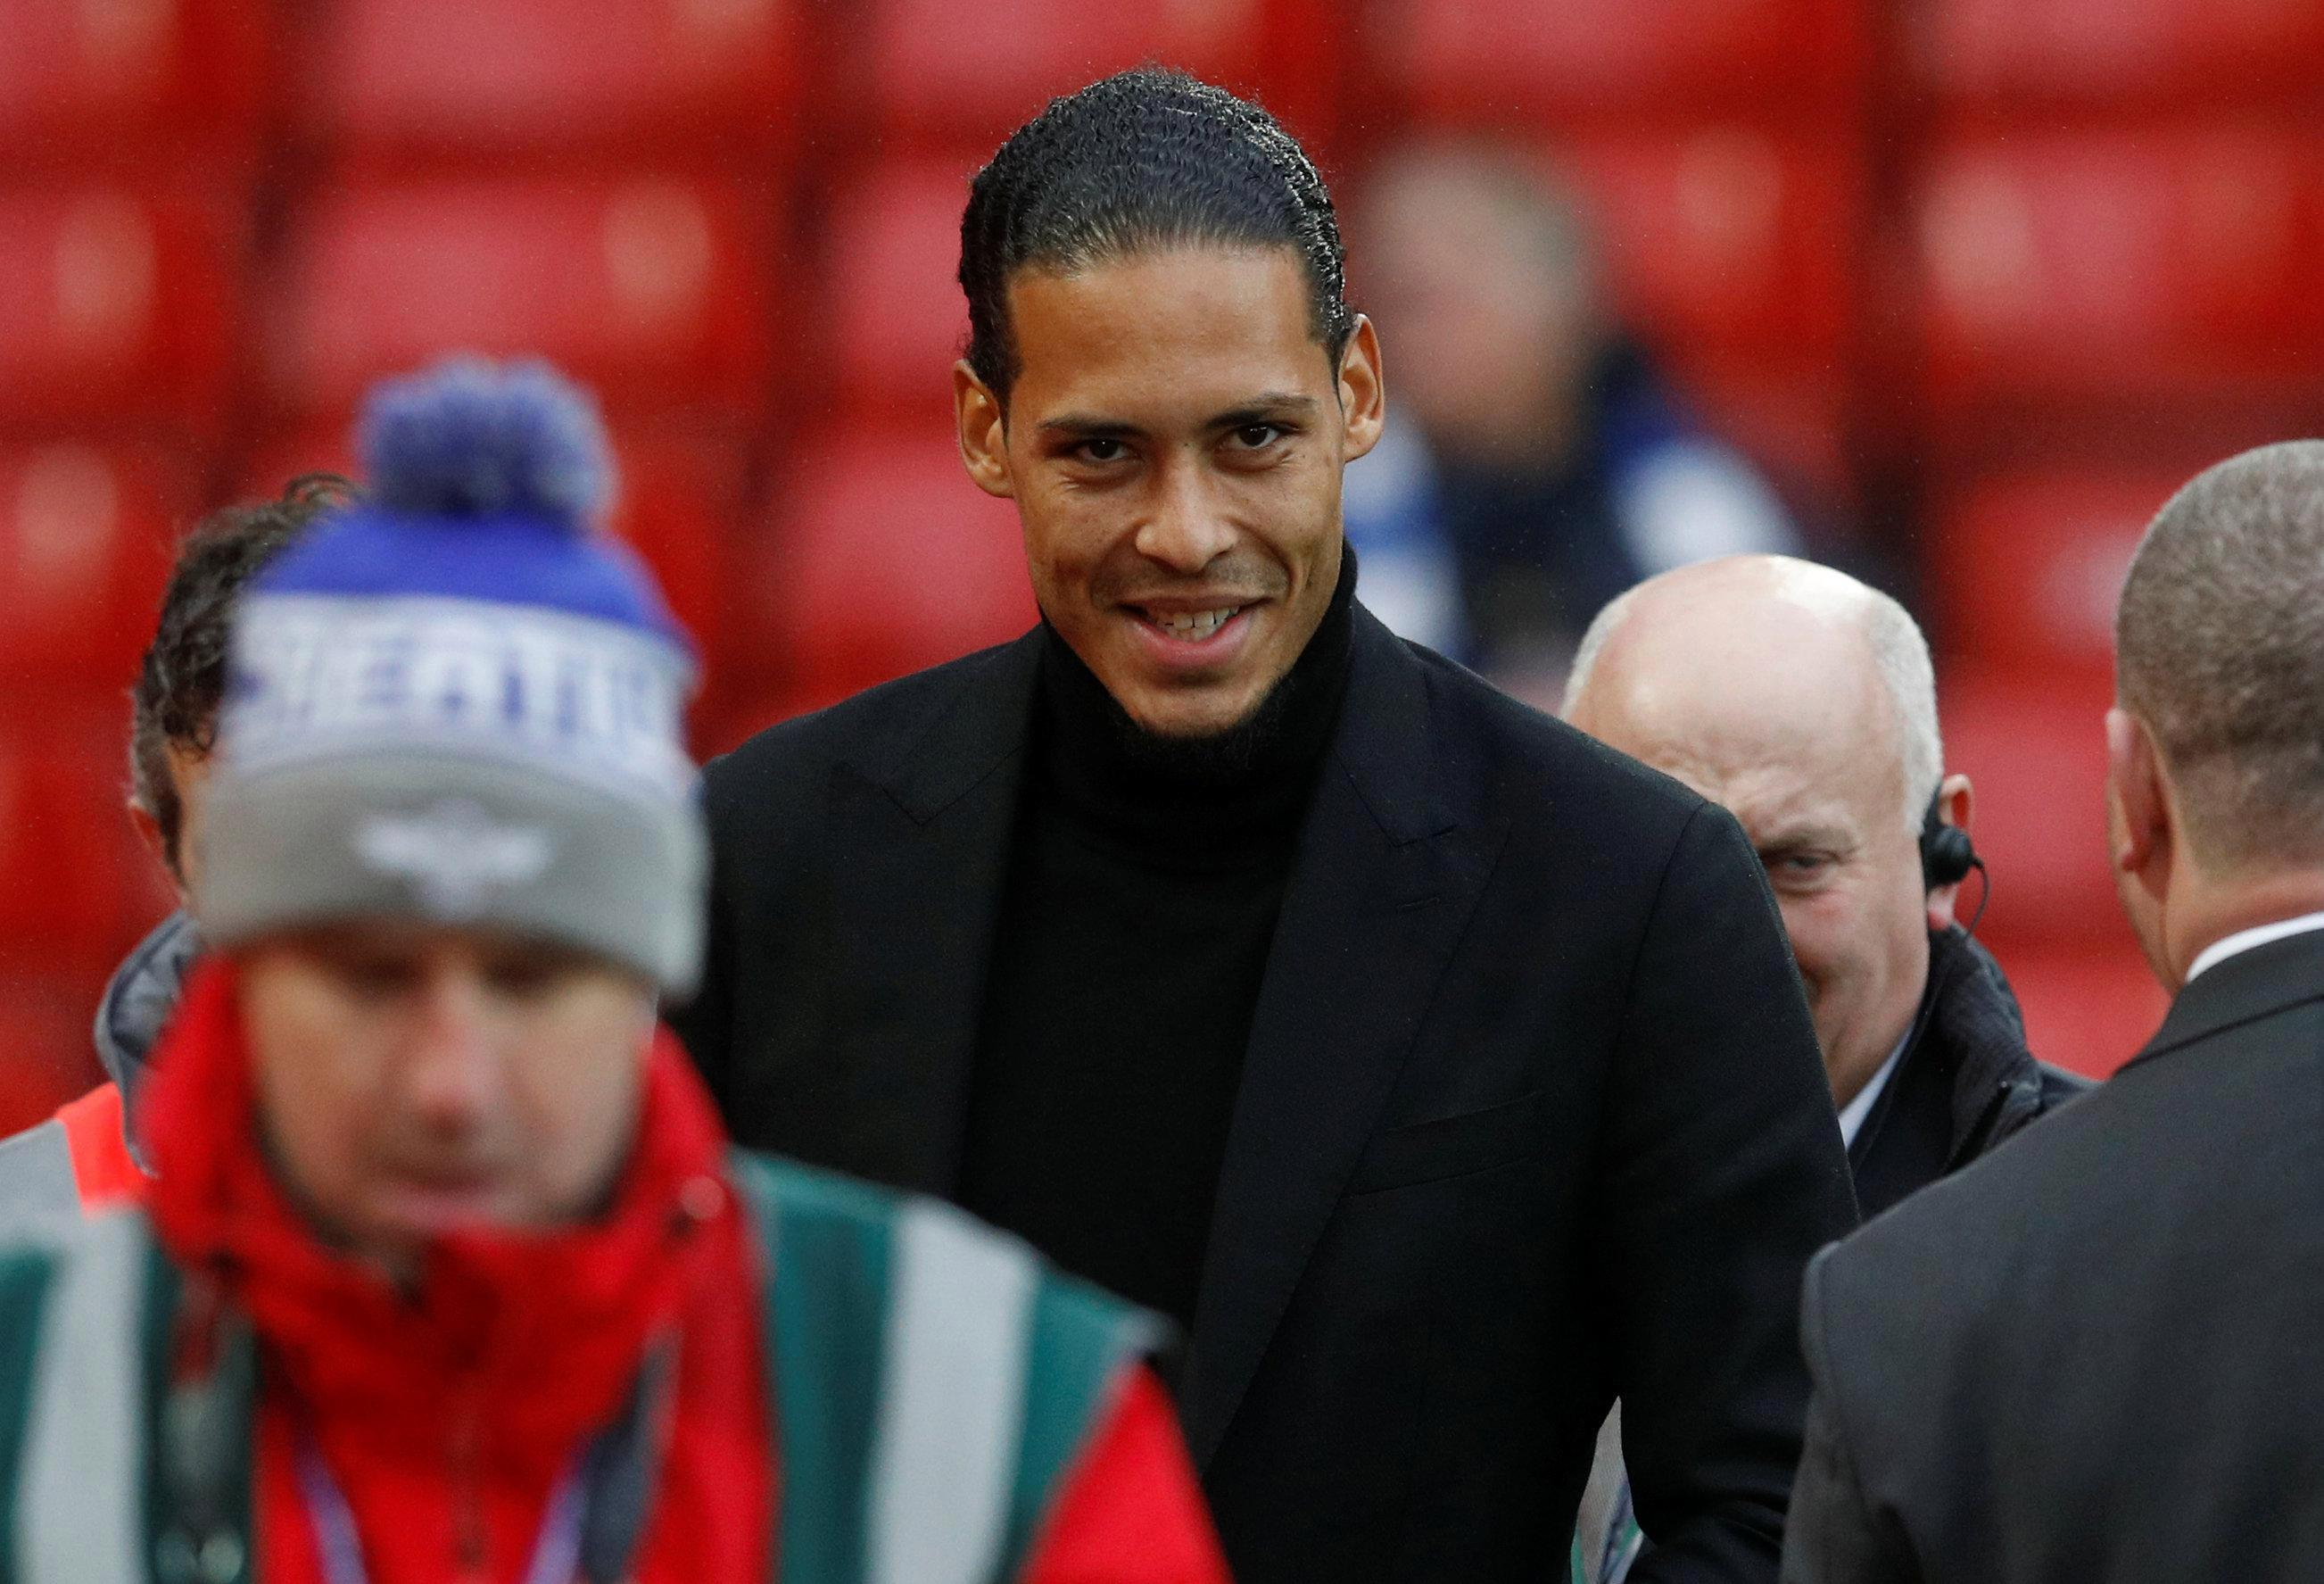 Virgil van Dijk describes Liverpool as the 'perfect match for him and his family' after defender completes world record Anfield switch